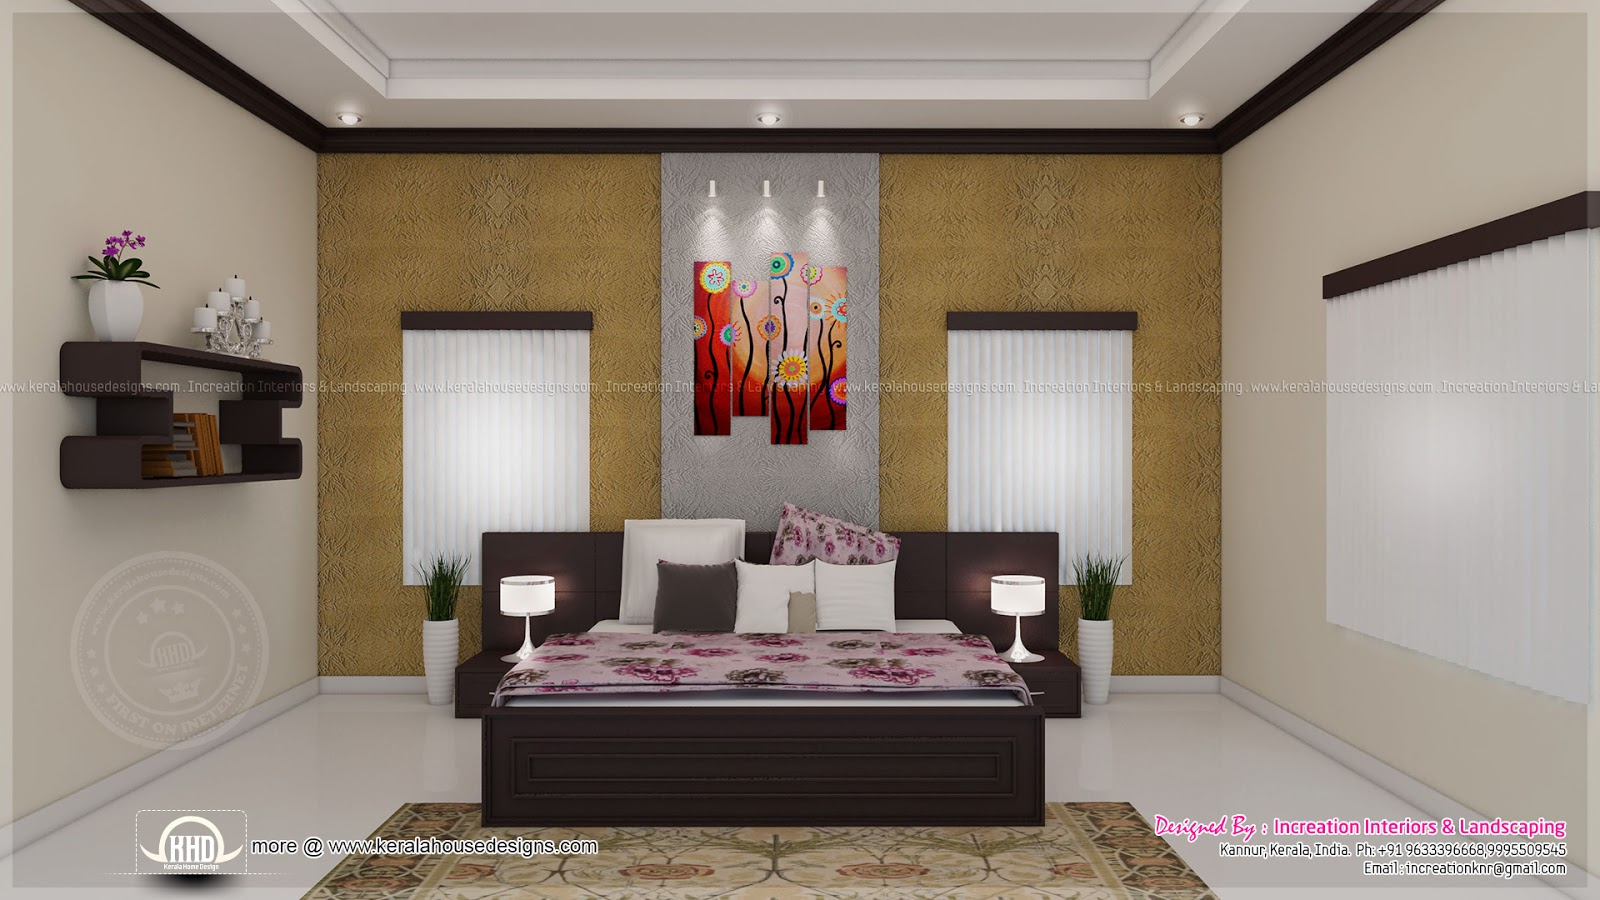 House interior ideas in 3d rendering kerala home design House model interior design